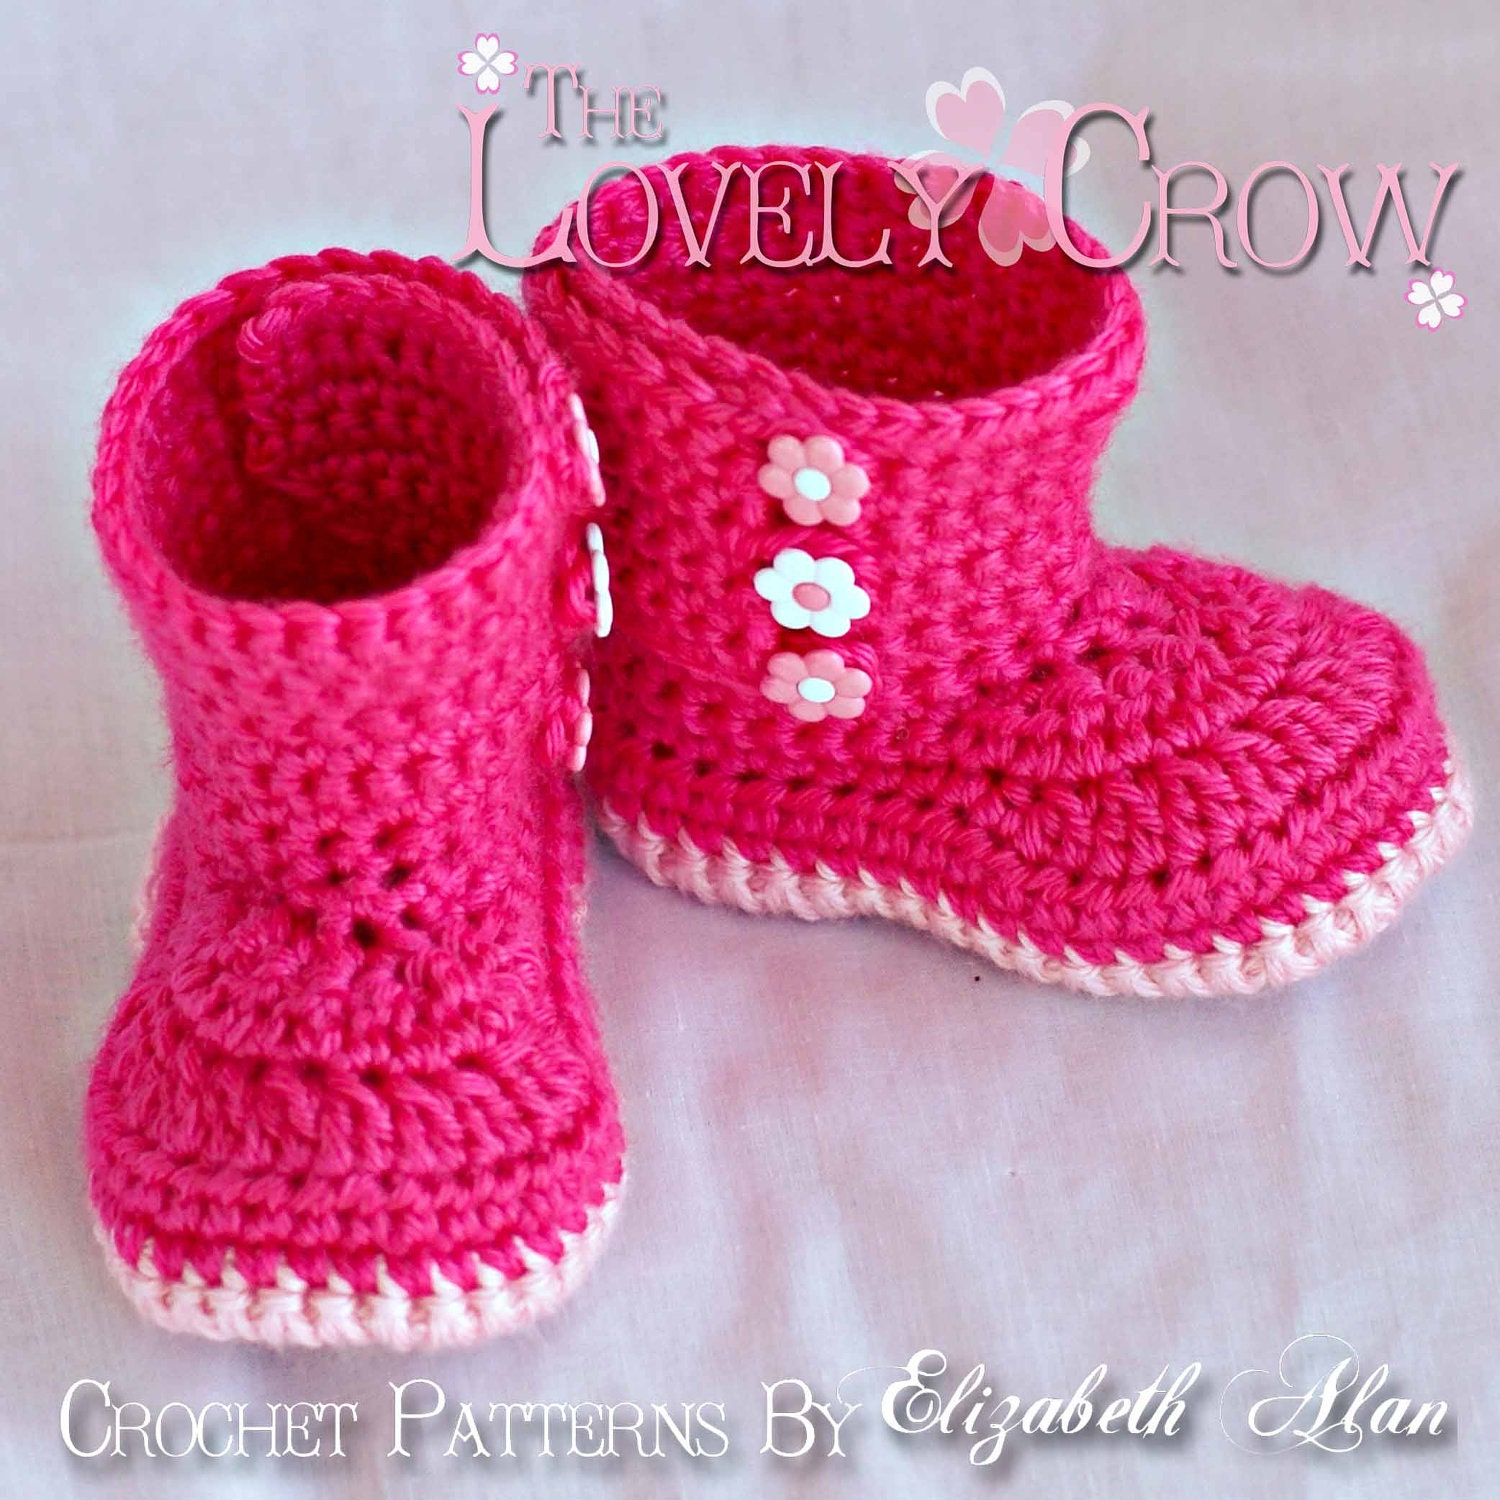 Crochet Baby Girl Boots Pattern : Booties Crochet Pattern Boots for BABY GARDEN BOOTS digital